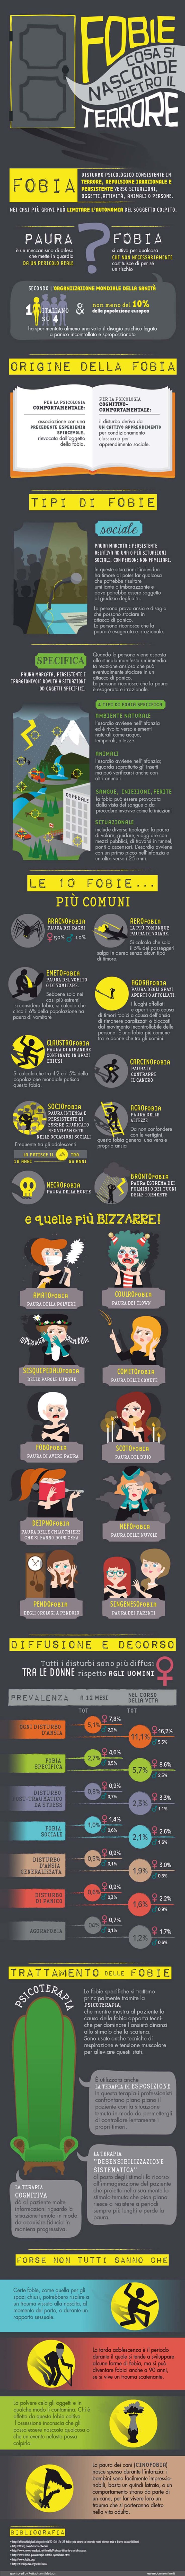 Infographic FOBIE COSA SI NASCONDE DIETRO IL TERRORE (PHOBIAS WHAT IS HIDING BEHIND THE TERROR) - infographics designed for esseredonnaonline.it- illustrated by Alice Kle Borghi, kleland.com